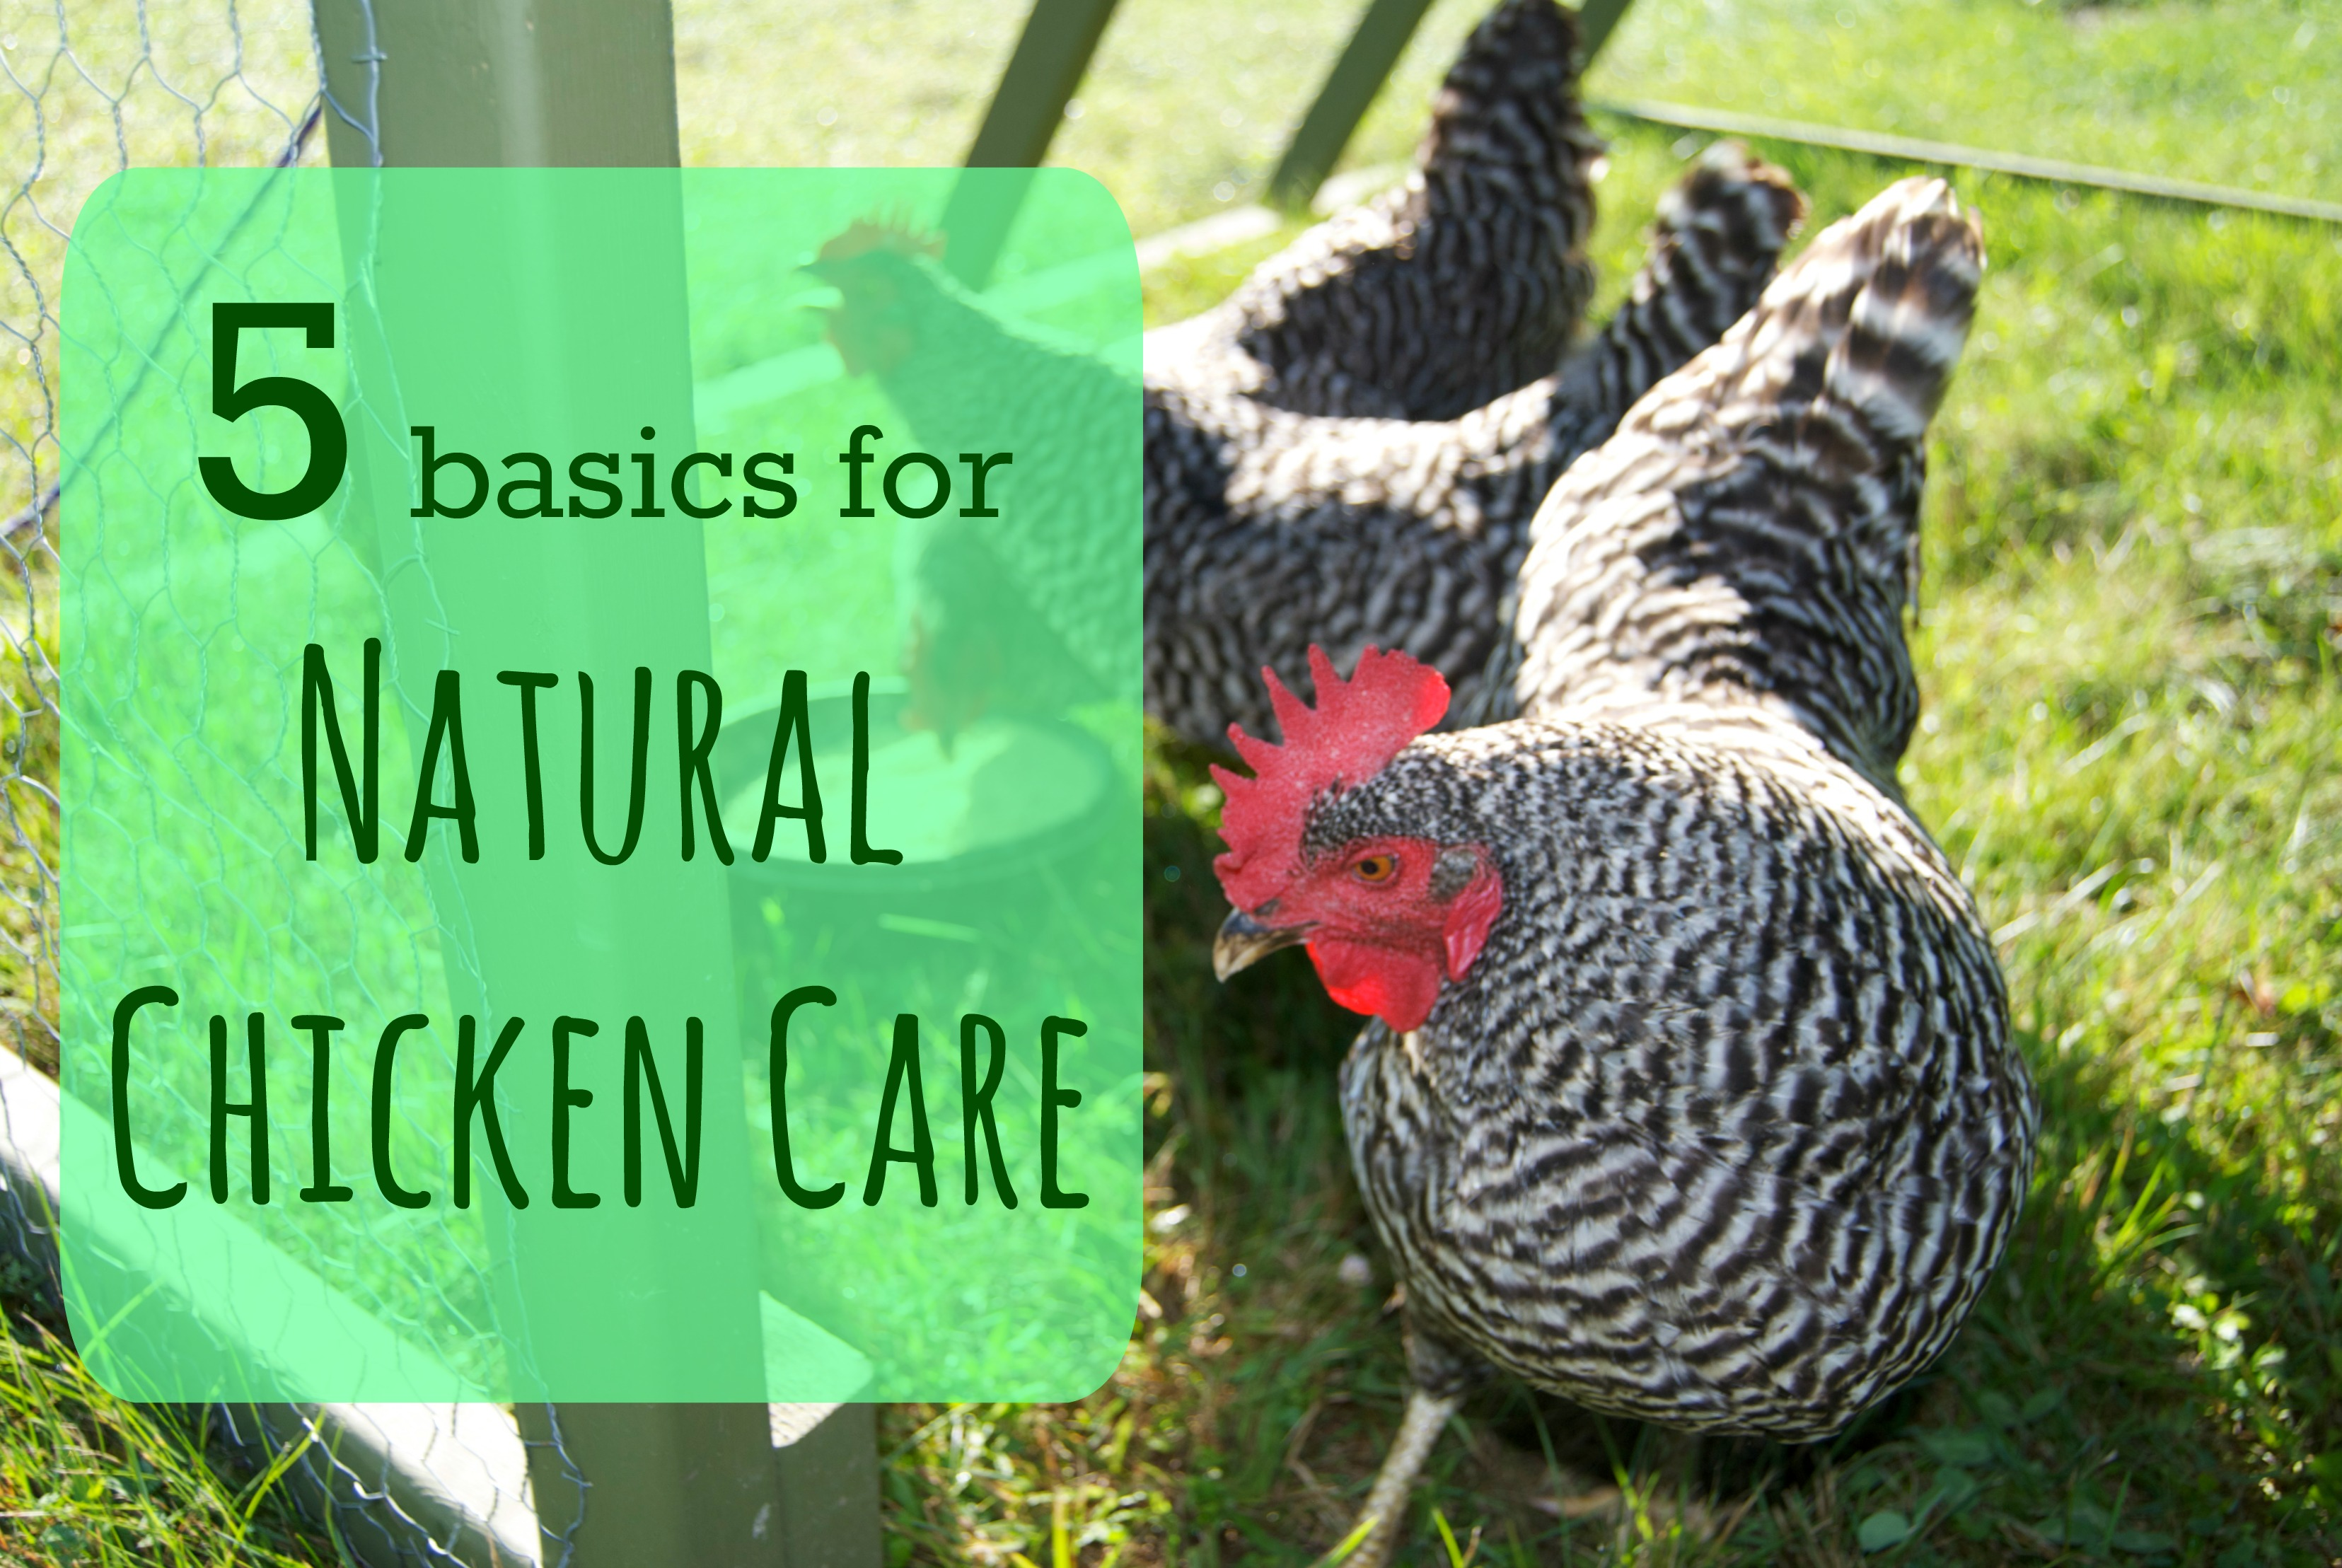 5 Basics for natural chicken care